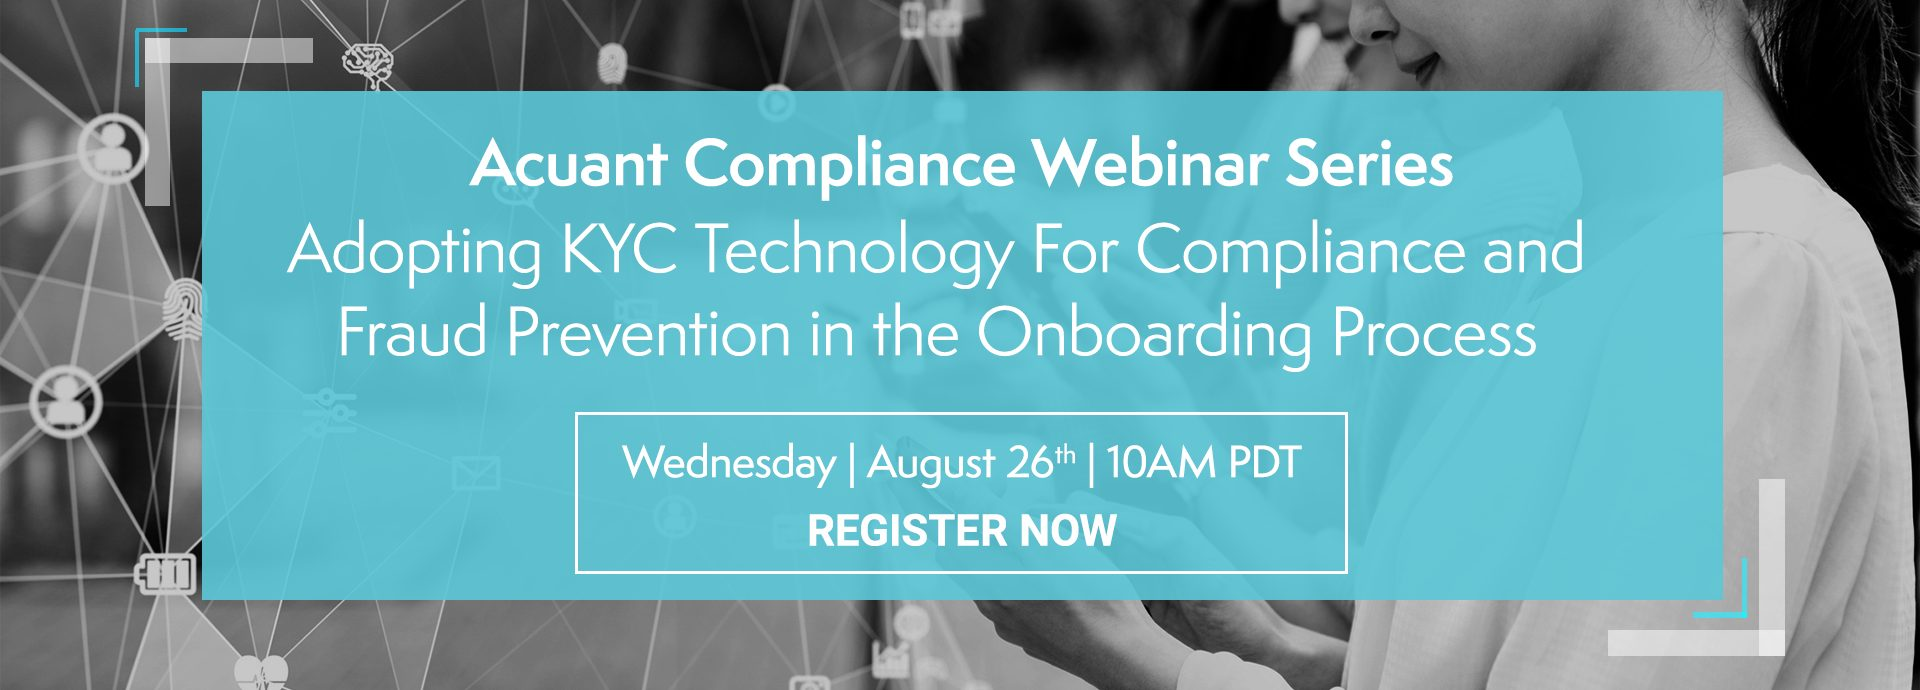 Register for Webinar: Adopting KYC Technology For Compliance and Fraud Prevention in the Onboarding Process